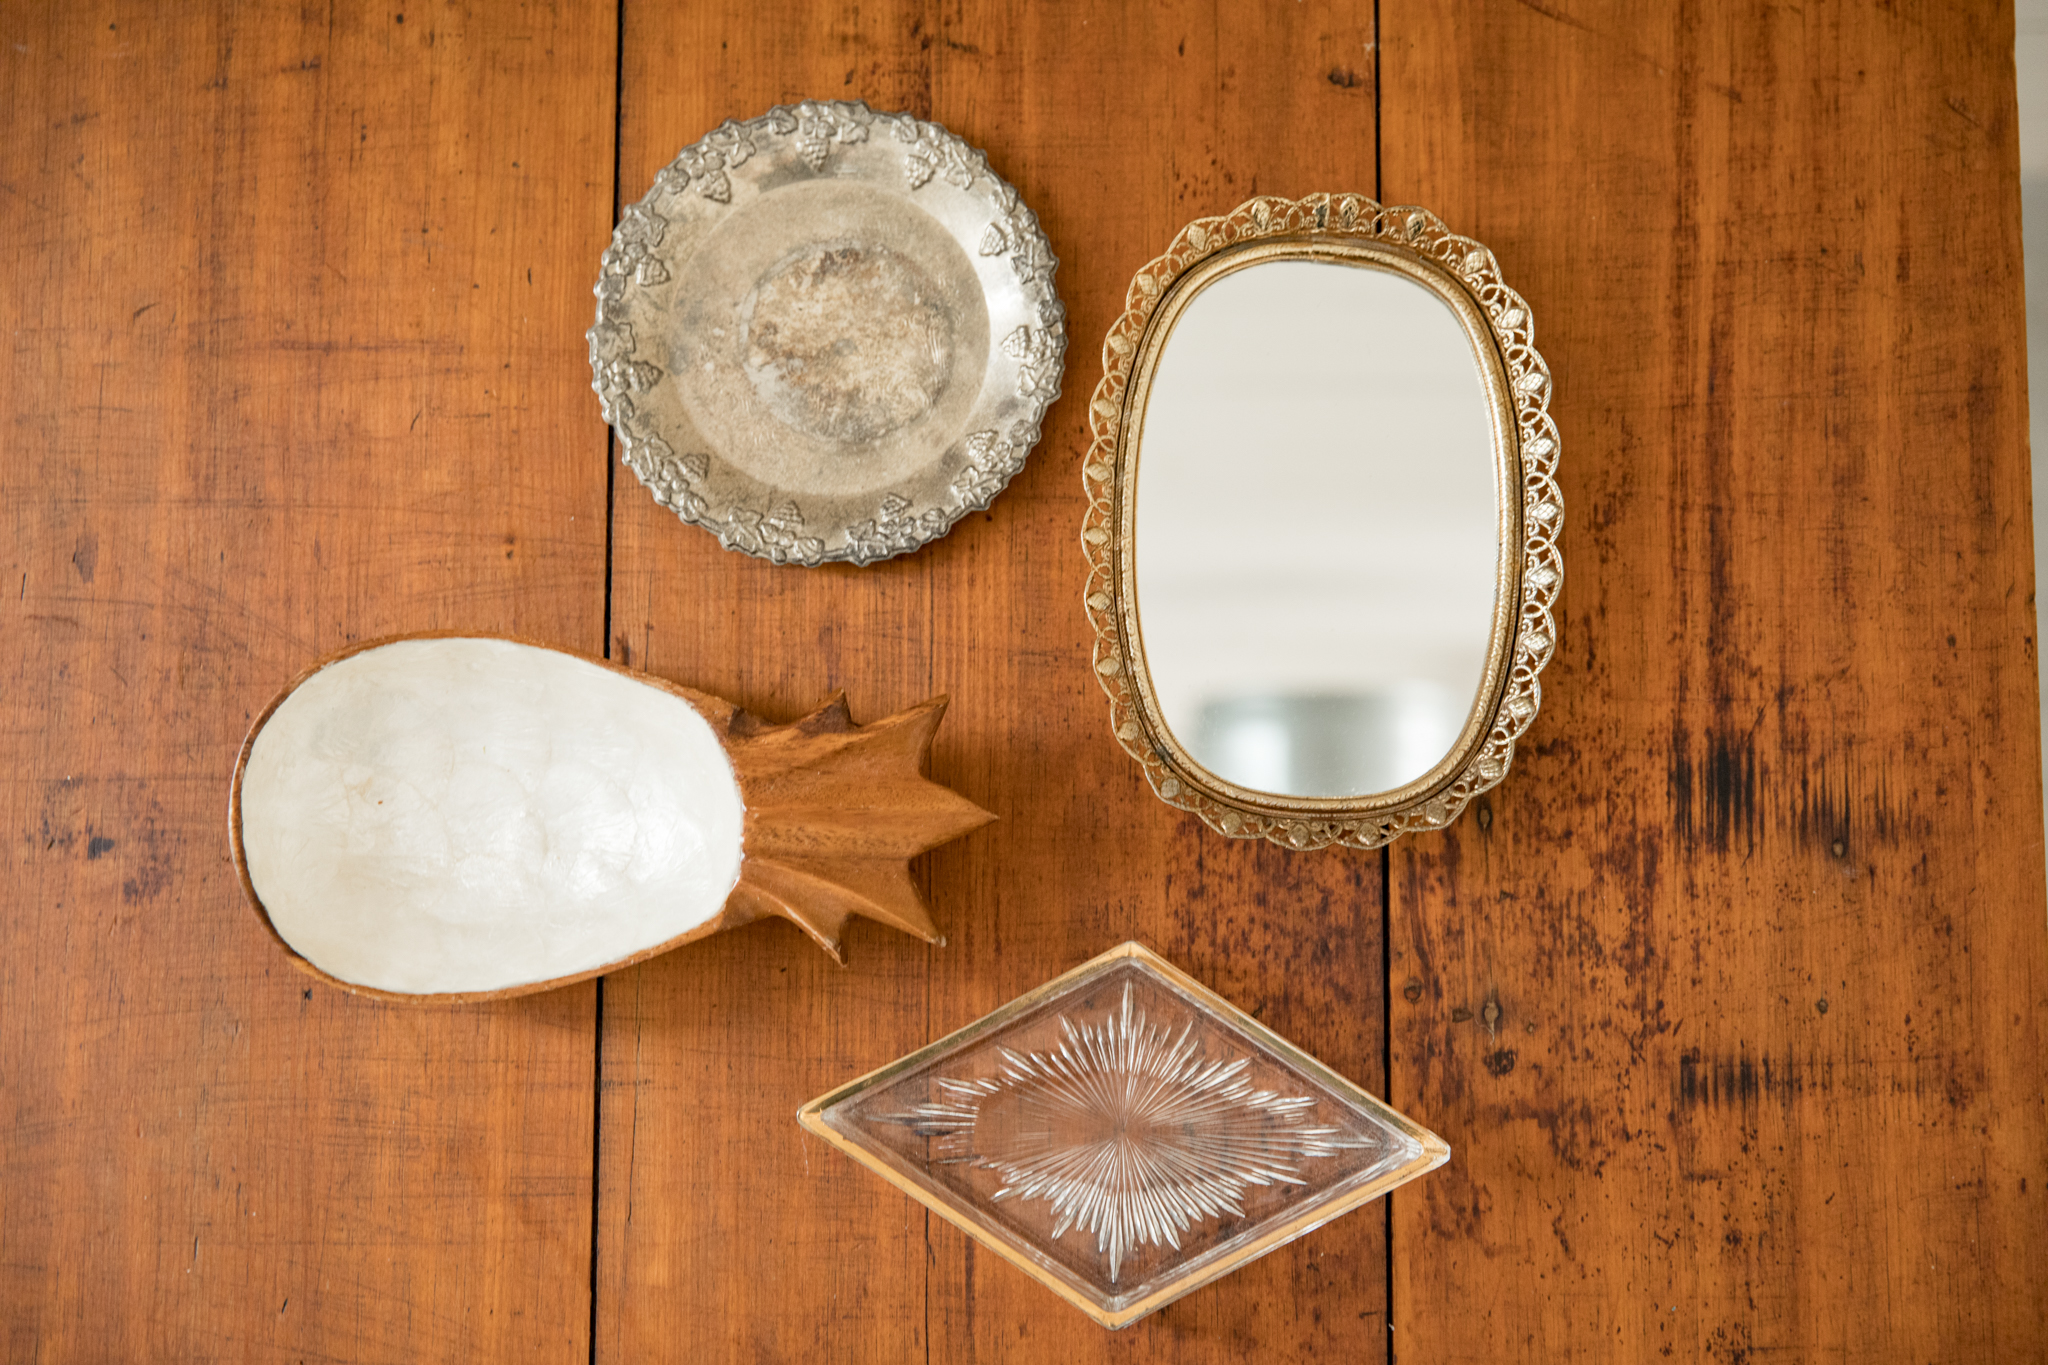 Assortment of Small Vintage Trays